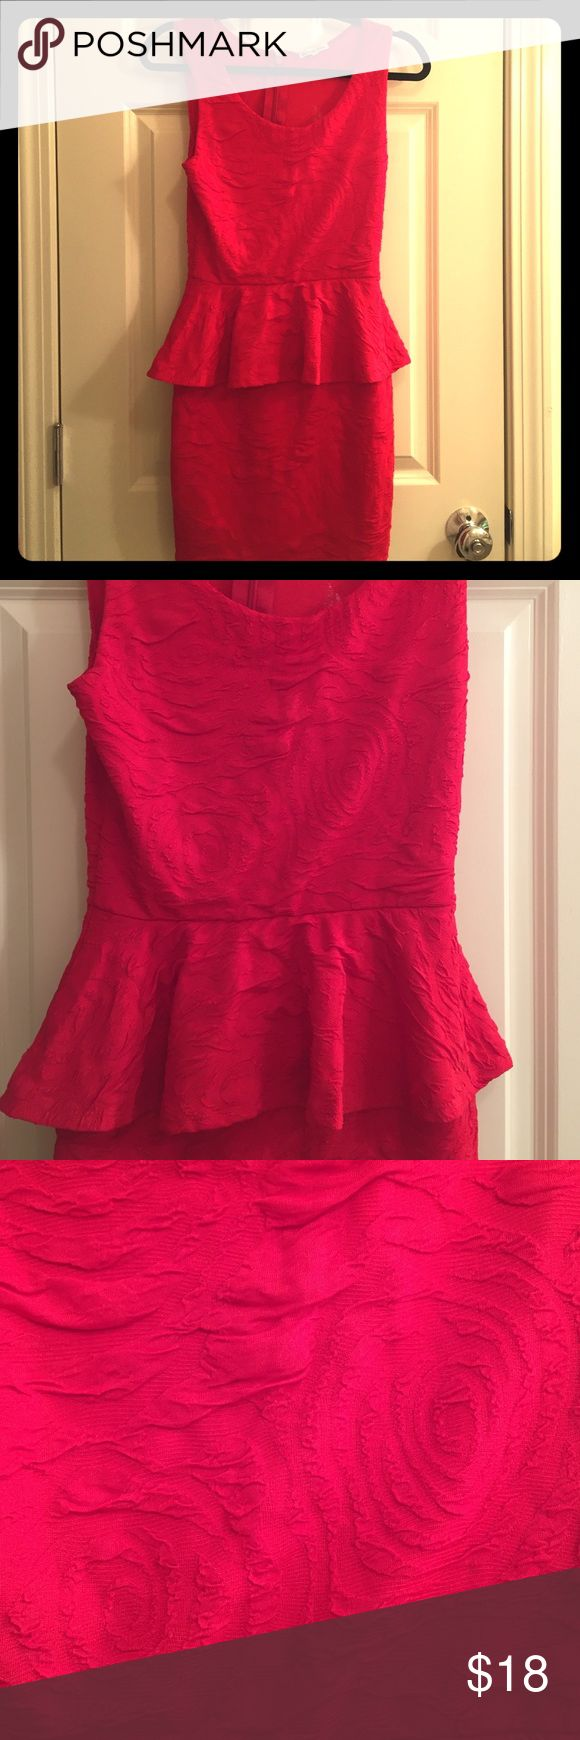 Red peplum dress Fitted peplum dress, like new. Has details in material which can be seen close up. Charlotte Russe Dresses